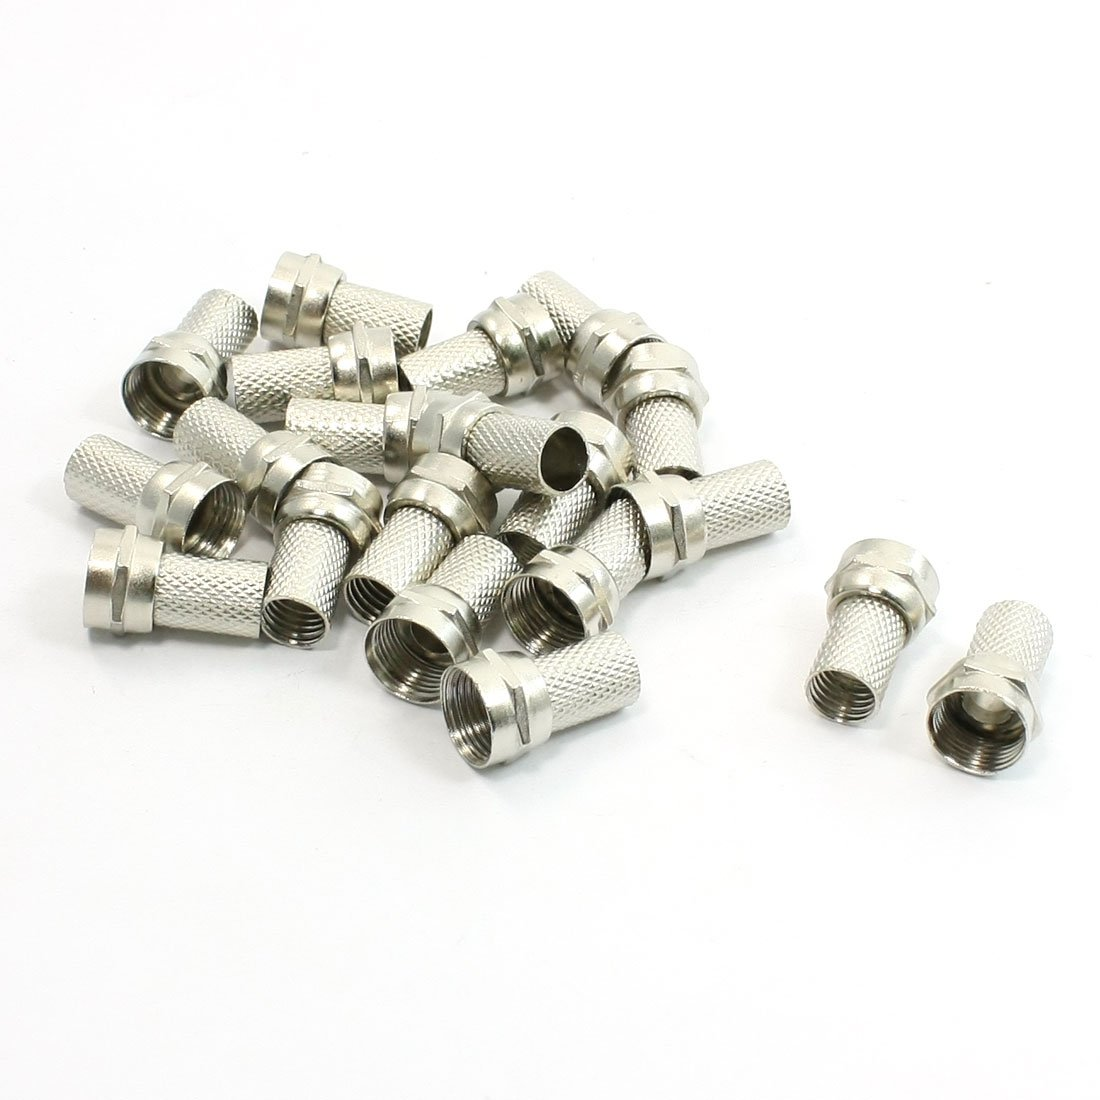 WSFS Hot 20Pcs CCTV RG6 F-Type Twist-On Coax Coaxial Cable RF Connector Male(China (Mainland))